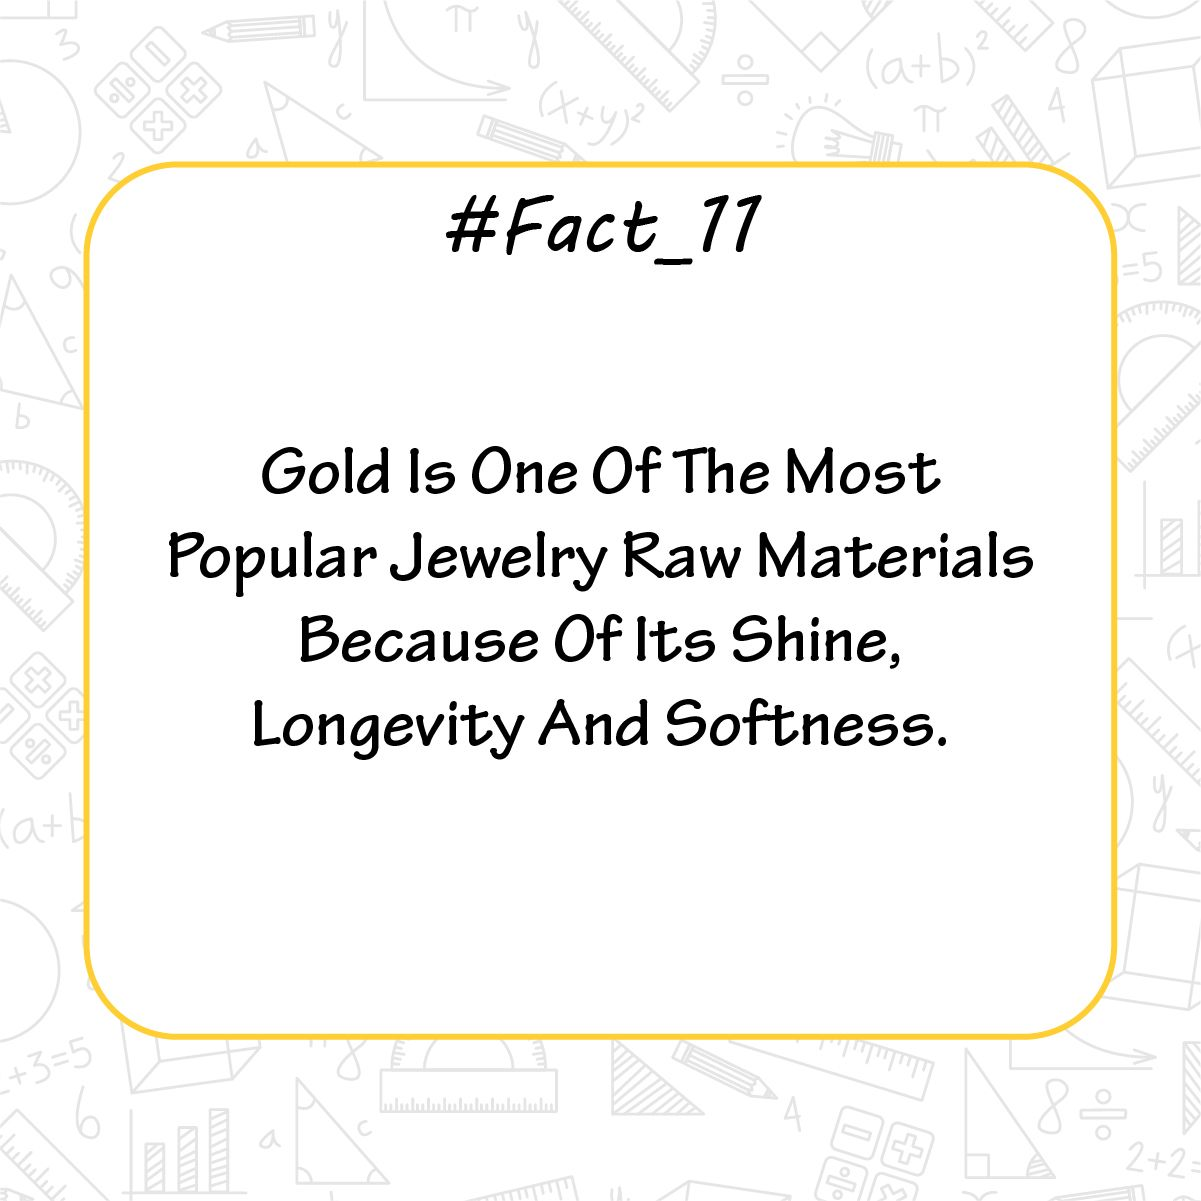 Pin By Nadin Hakim On Social Media Technology Fashion Fashion Designing Institute Jewelry Facts